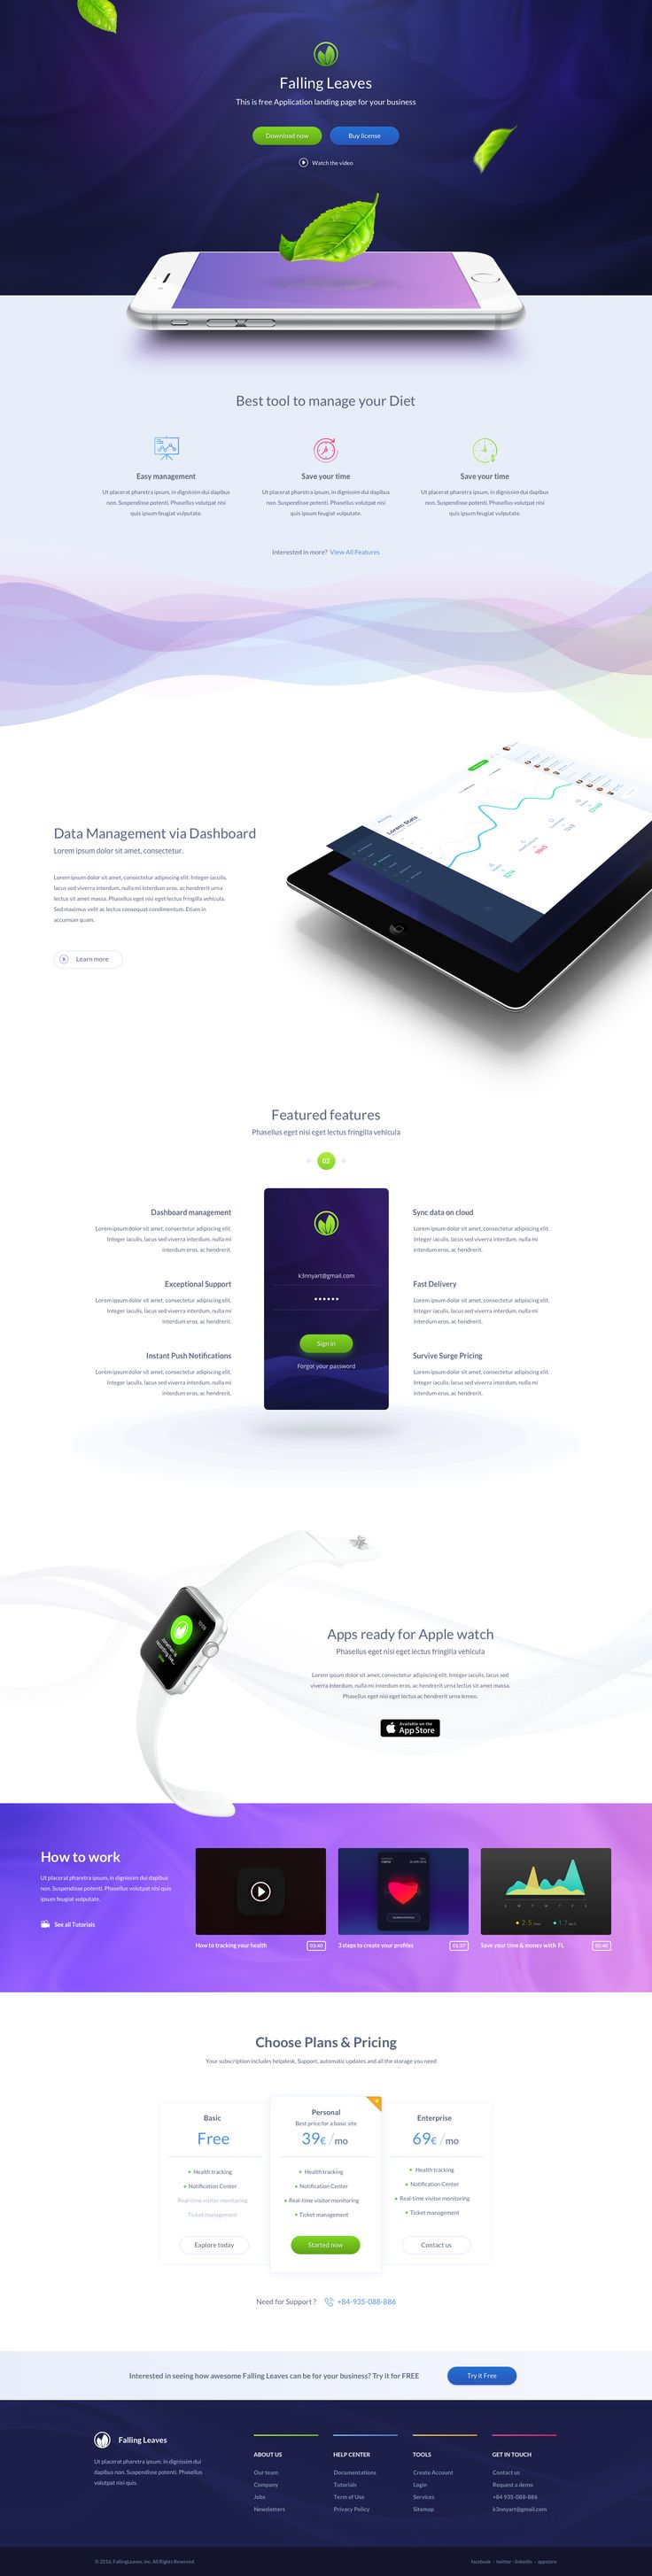 One Page App Landing page - Free giveaway by k3nnyart for WooRockets